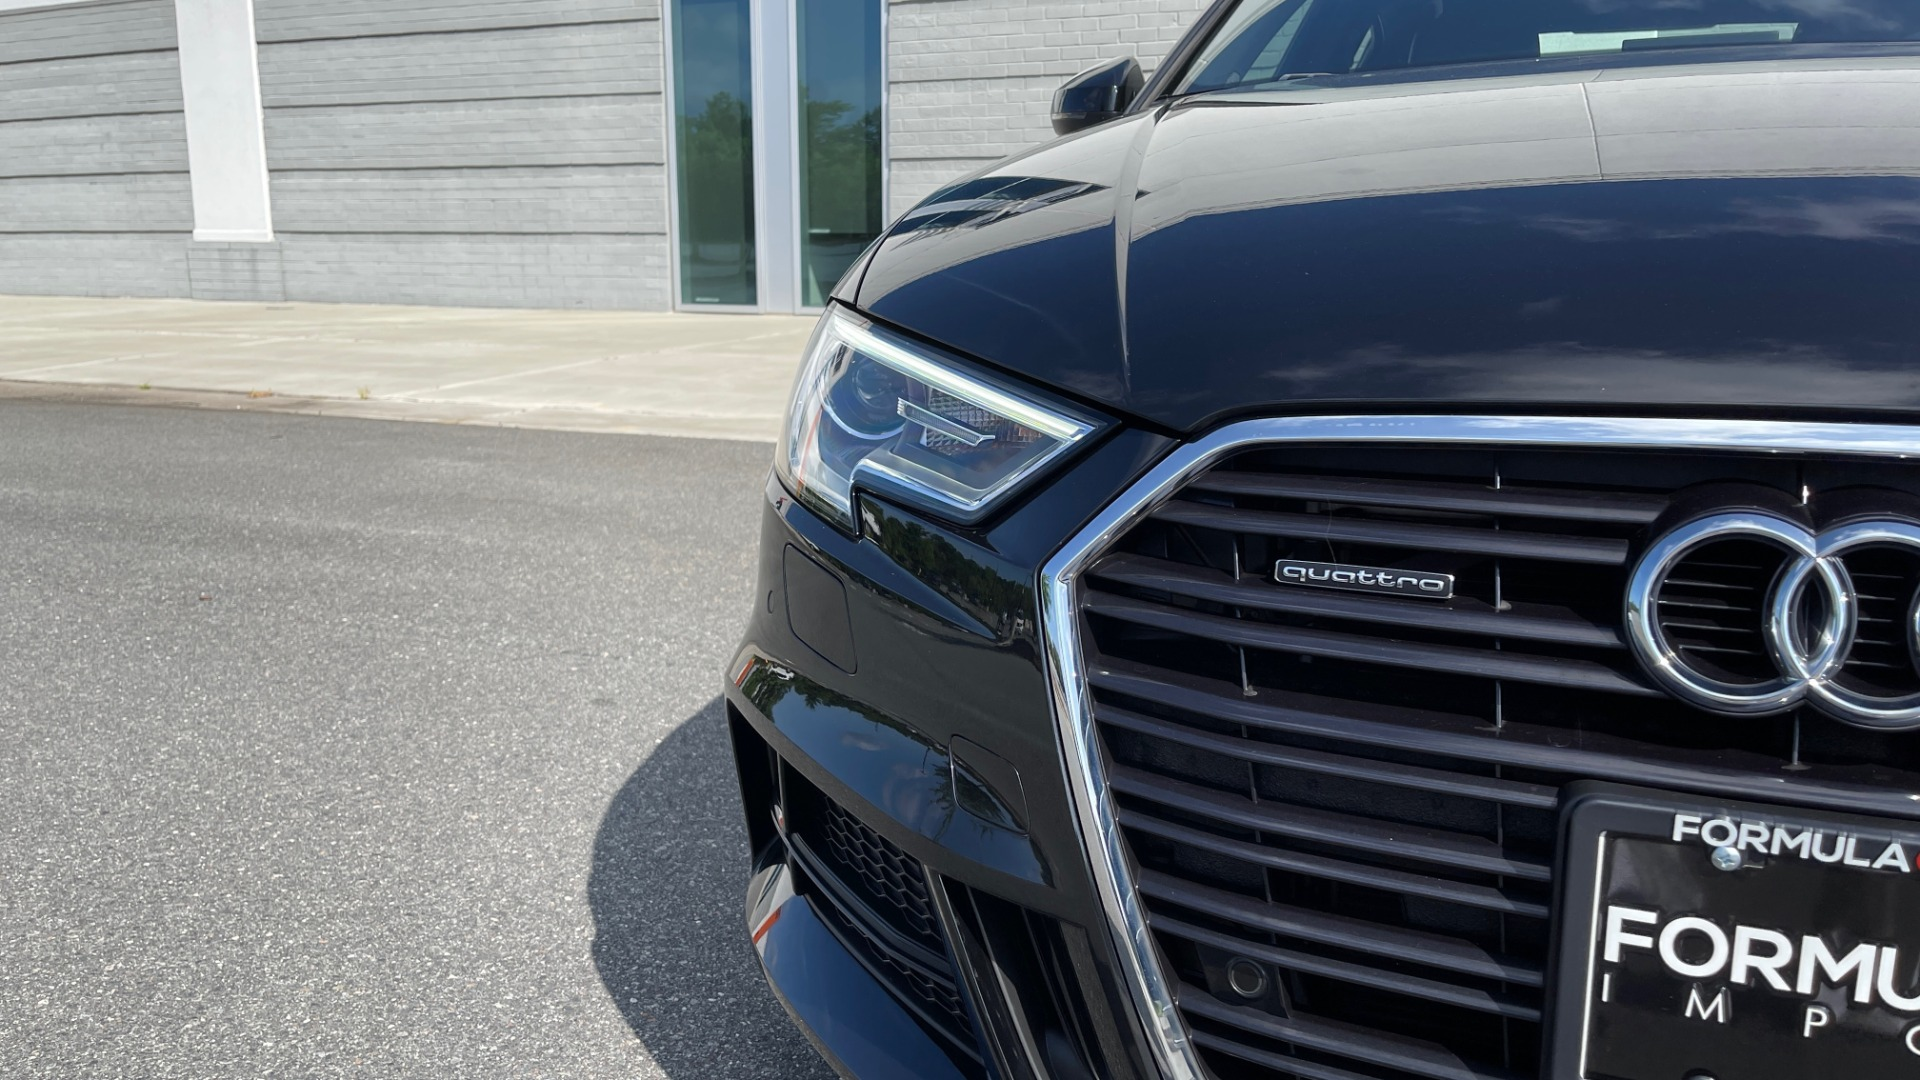 Used 2018 Audi A3 SEDAN PREMIUM PLUS / S-LINE / PANO-ROOF / PARK SYS / REARVIEW for sale $31,795 at Formula Imports in Charlotte NC 28227 12